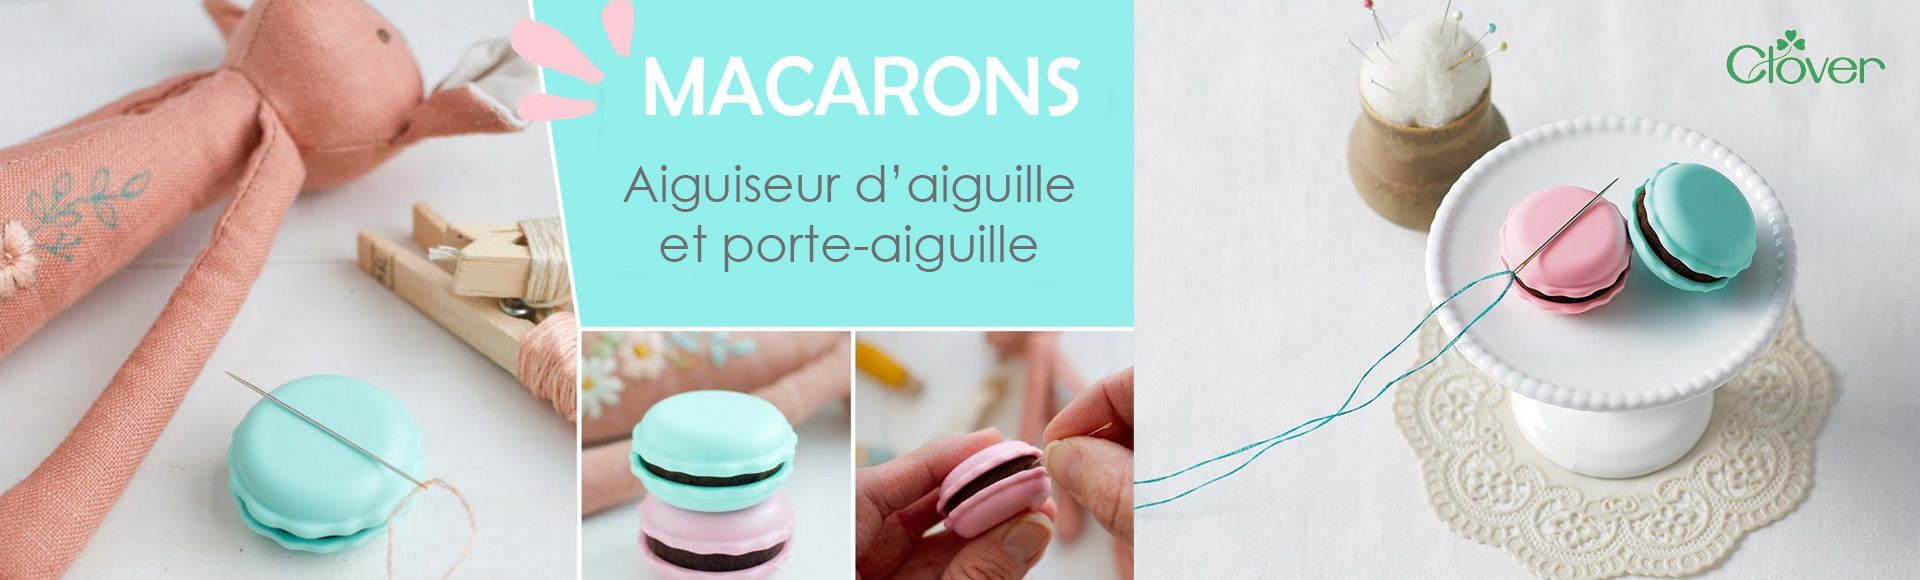 Macarons couture Clover